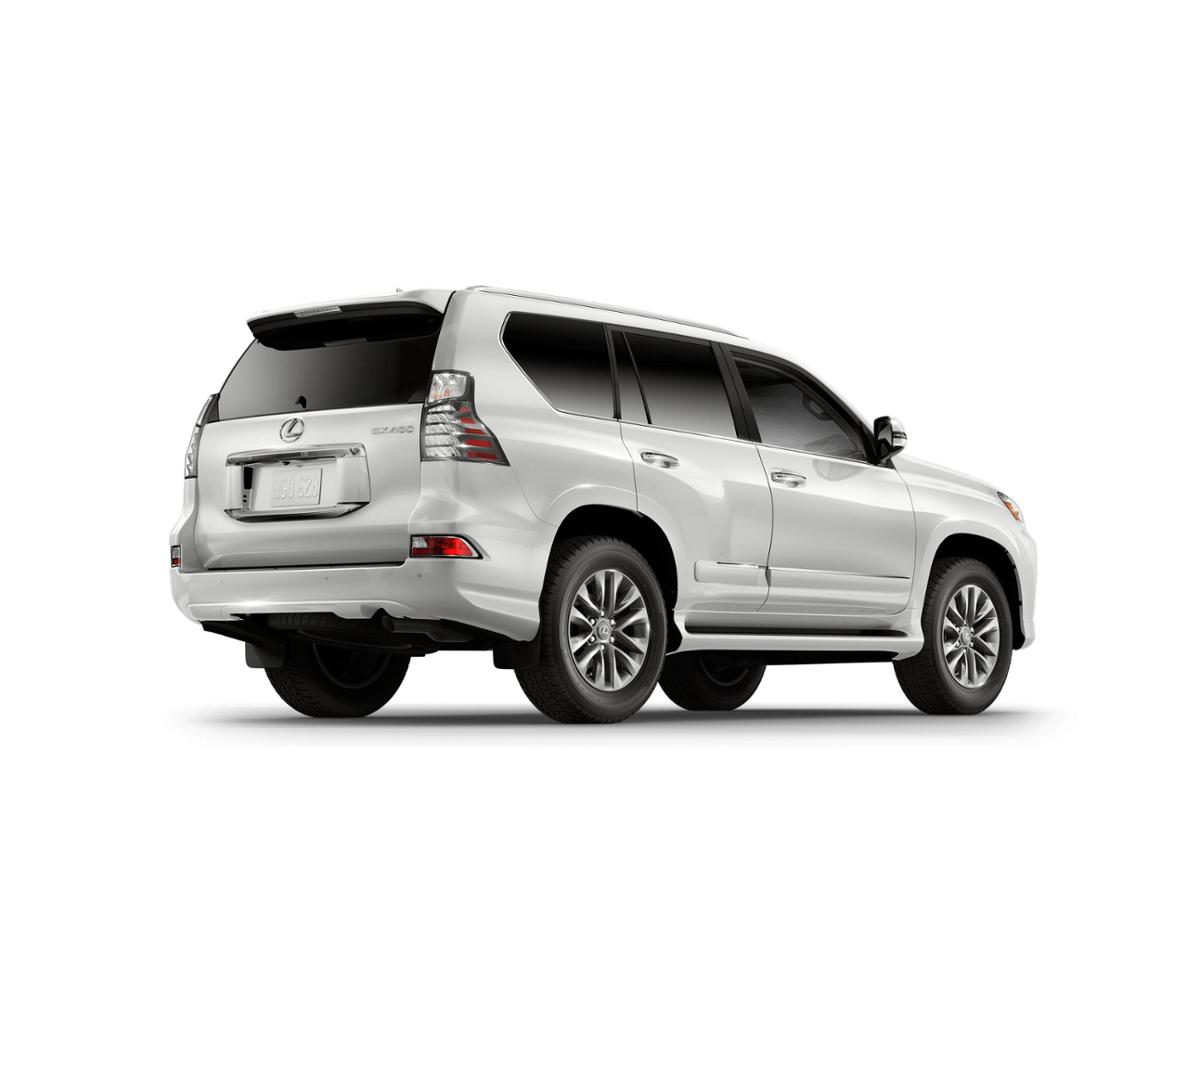 Pre Owned Lexus Gx 460: Lexus Of Orland Serving Chicago